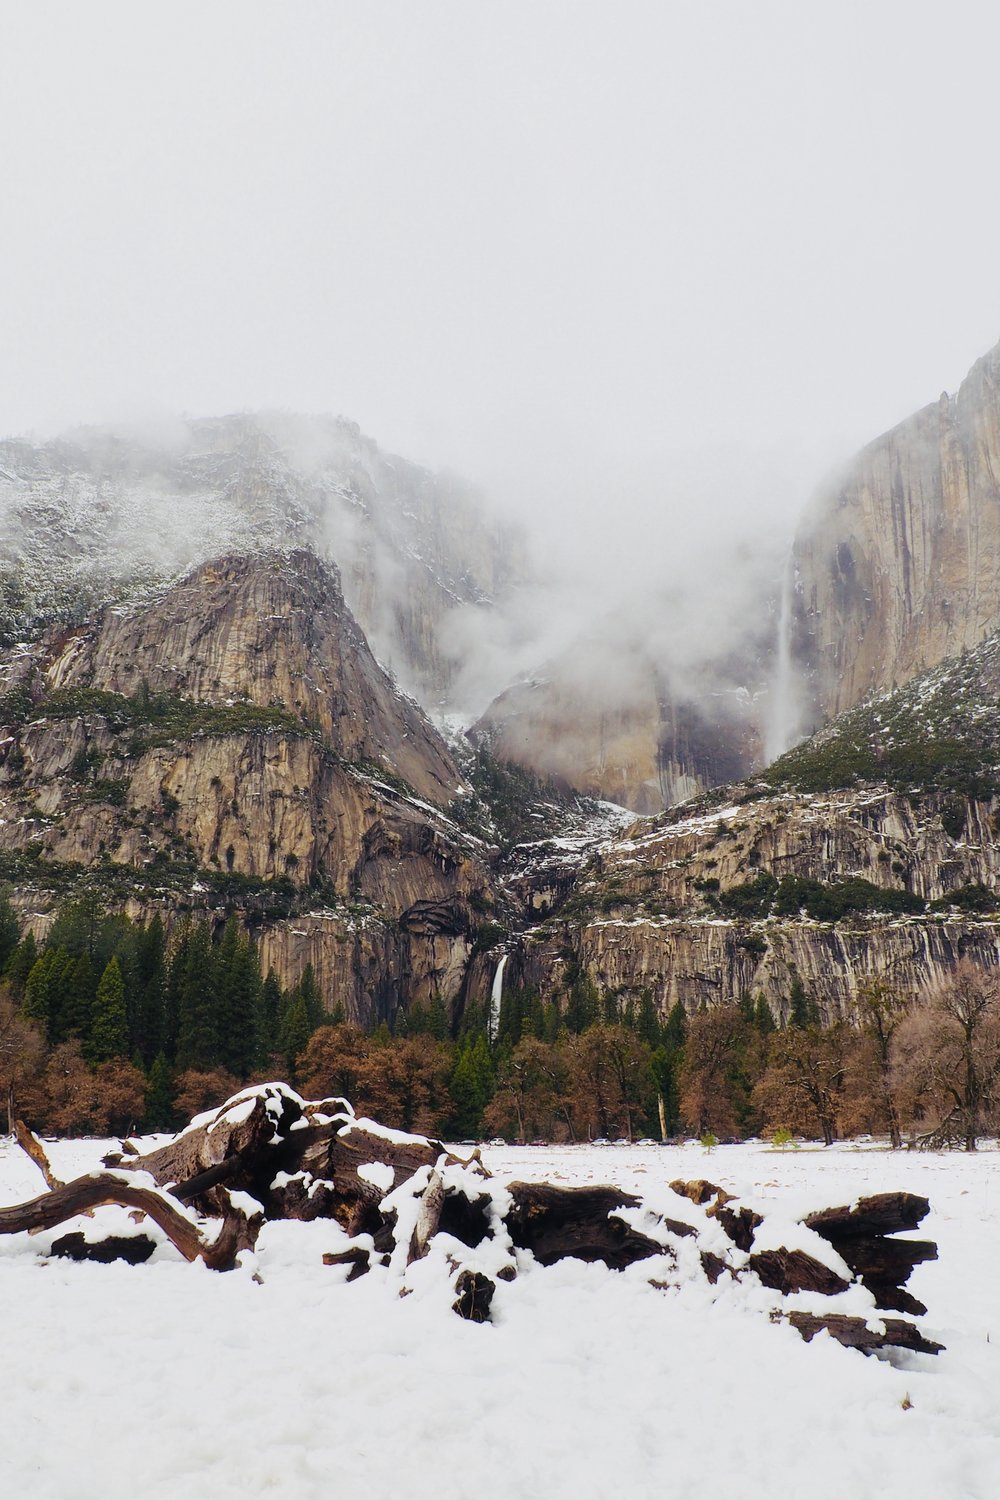 Saturday morning cleared up for a few hours and then more weather with snow passed though preventing us from getting any sunset photos. This is upper and lower Yosemite Falls from a meadow